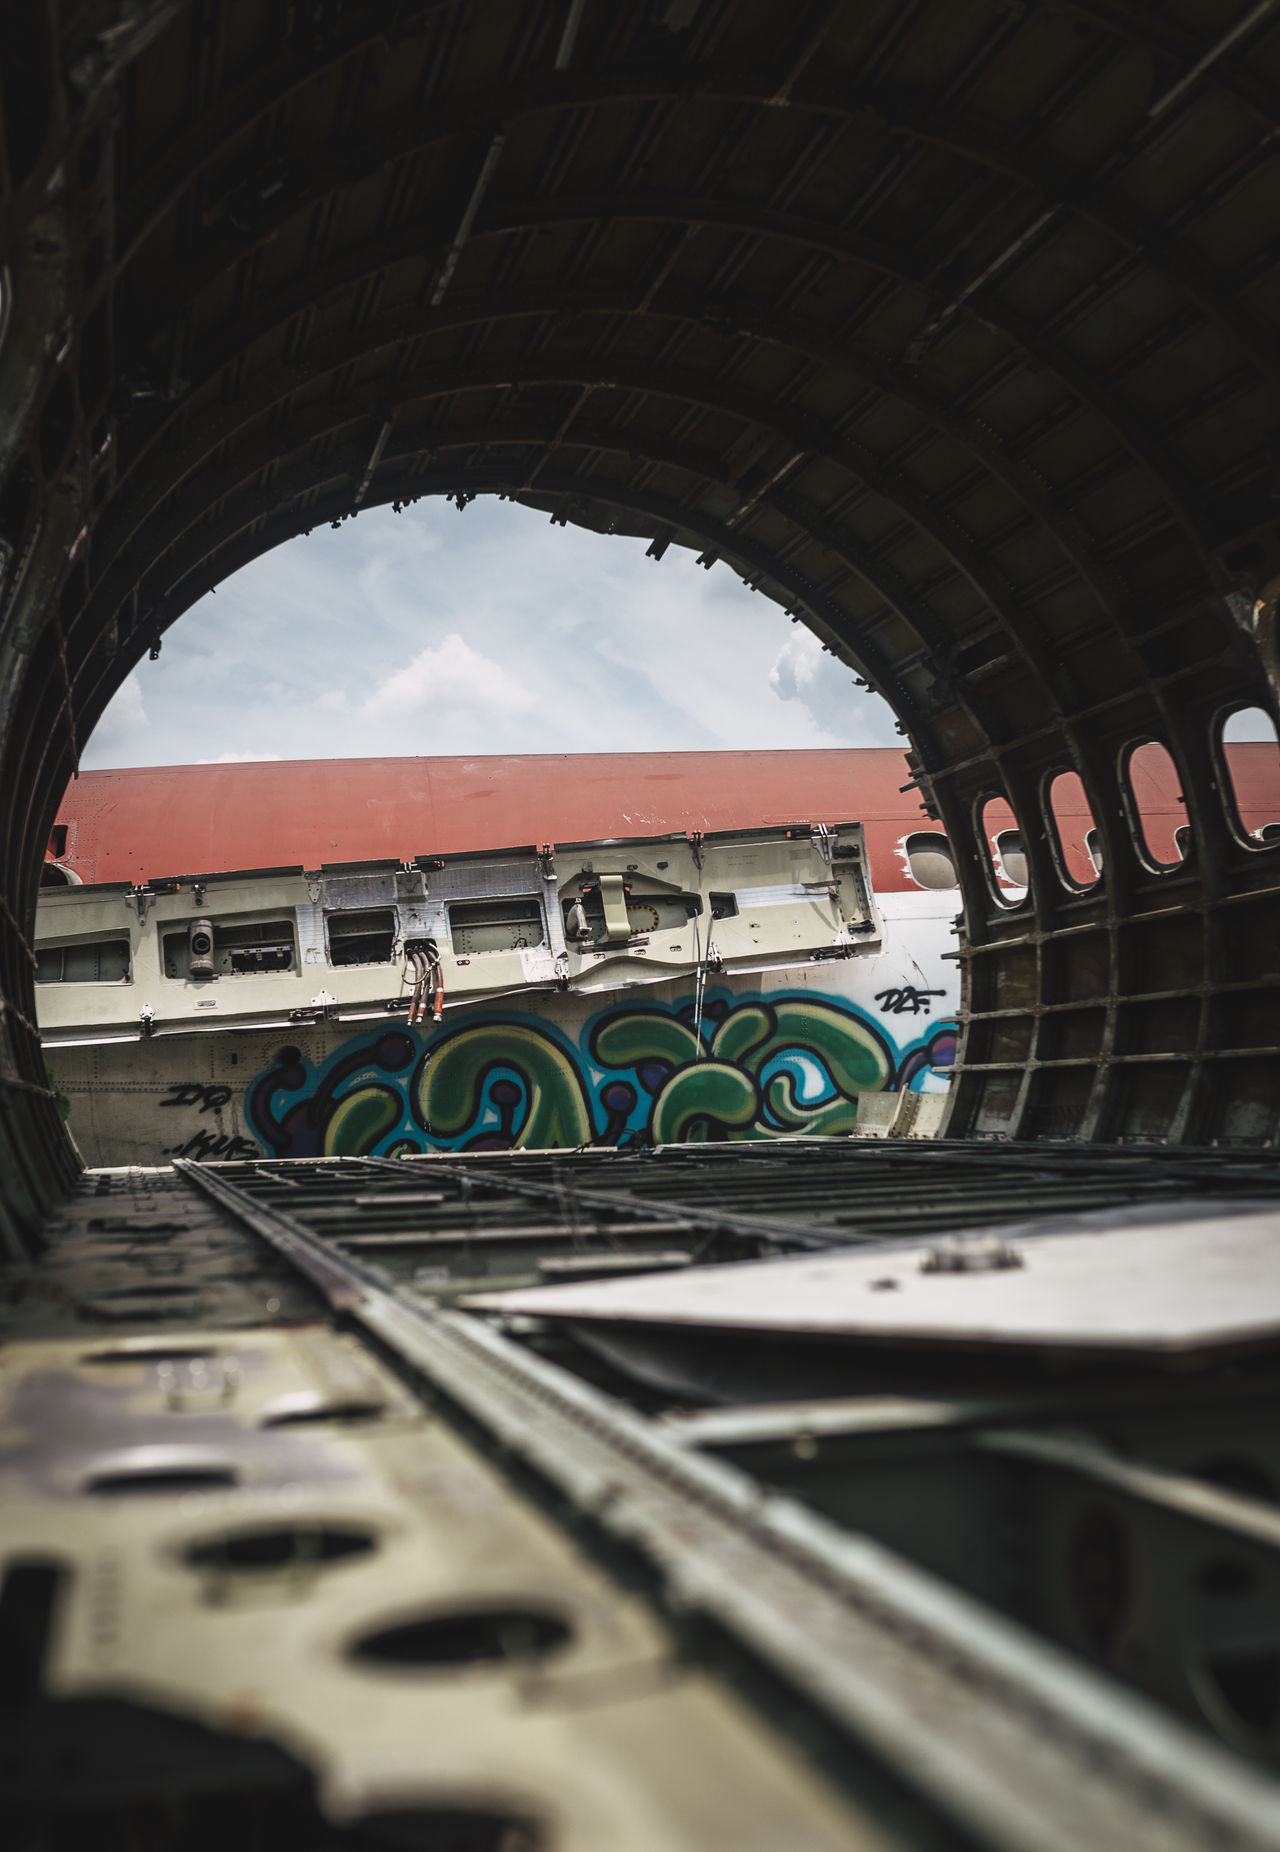 Abandoned Abandoned & Derelict Abandoned Places Airplane Arch Graffiti No People Streetart Travel Photography Urban Exploration Urbex Wreckage